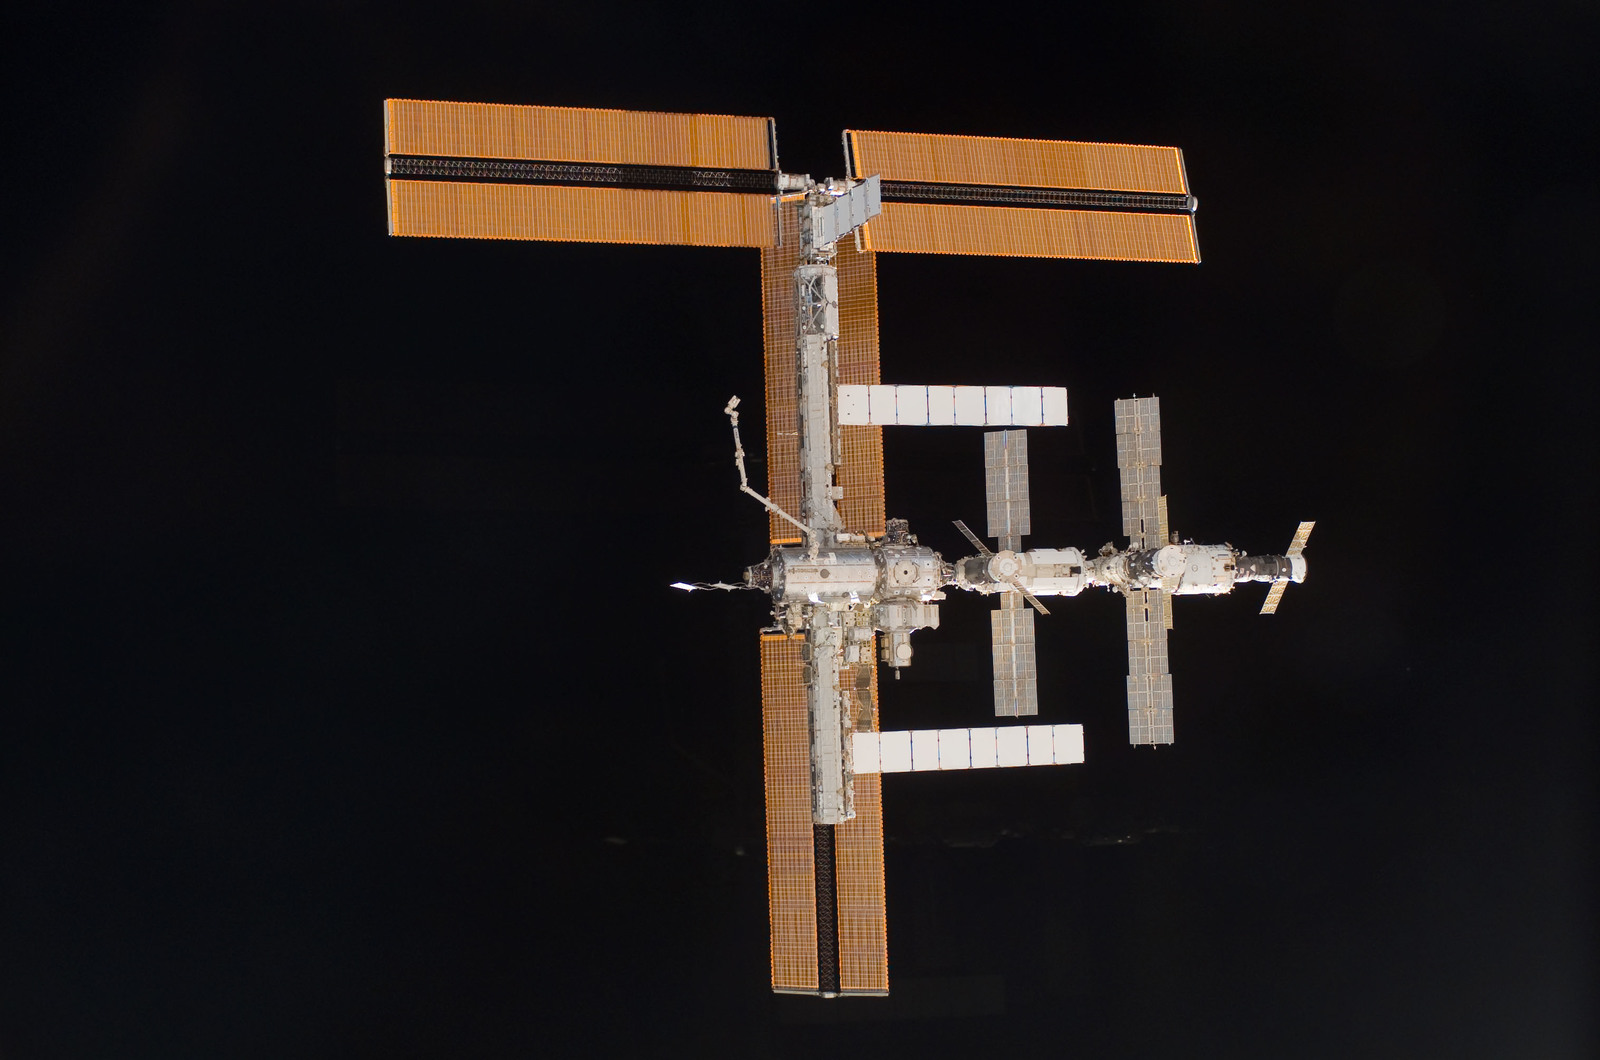 S115E06734 - STS-115 - Overall exterior view of the ISS during undocking and Flyaround Operations for STS-115 Space Shuttle Atlantis